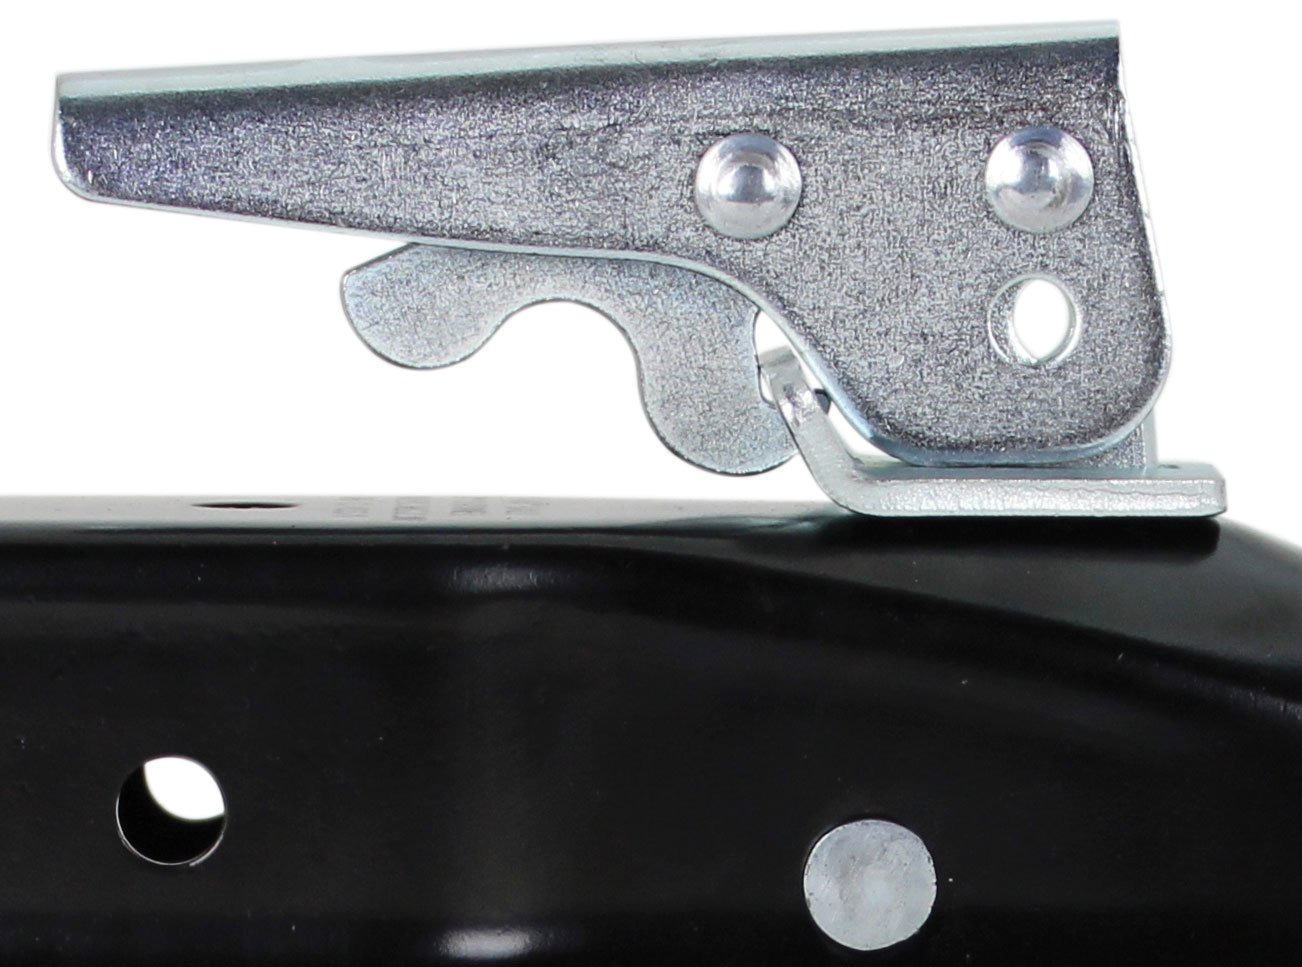 2,000 lbs. Quick Products QP-HS3020 Black Trigger-Style Trailer Coupler 1-7//8 Ball 2 Channel